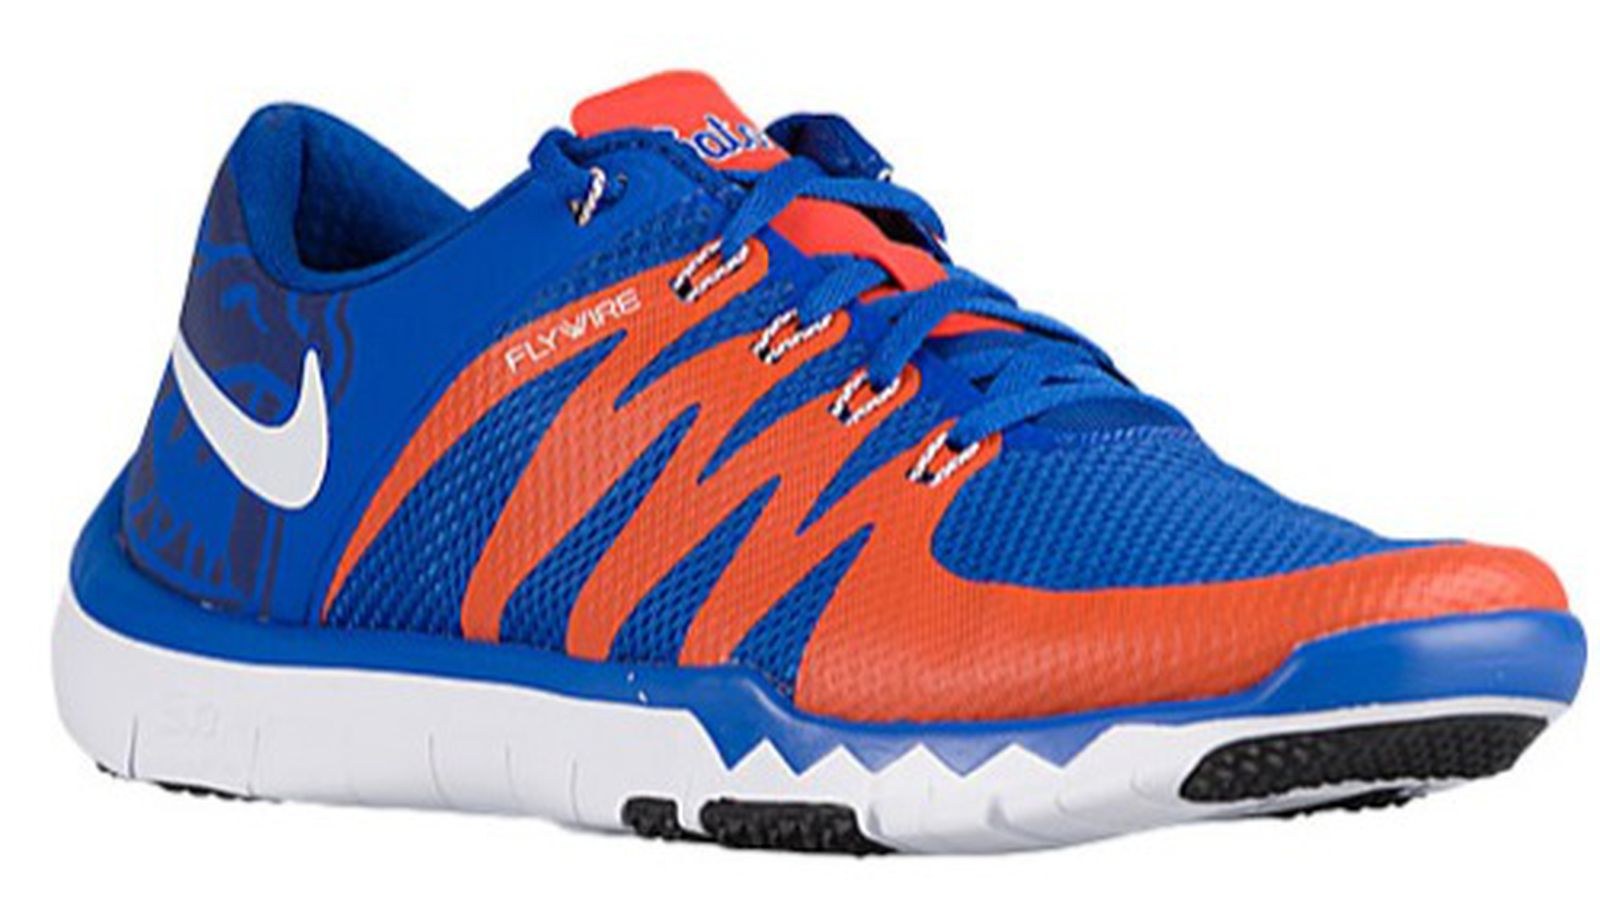 Florida Gator Nike Shoes